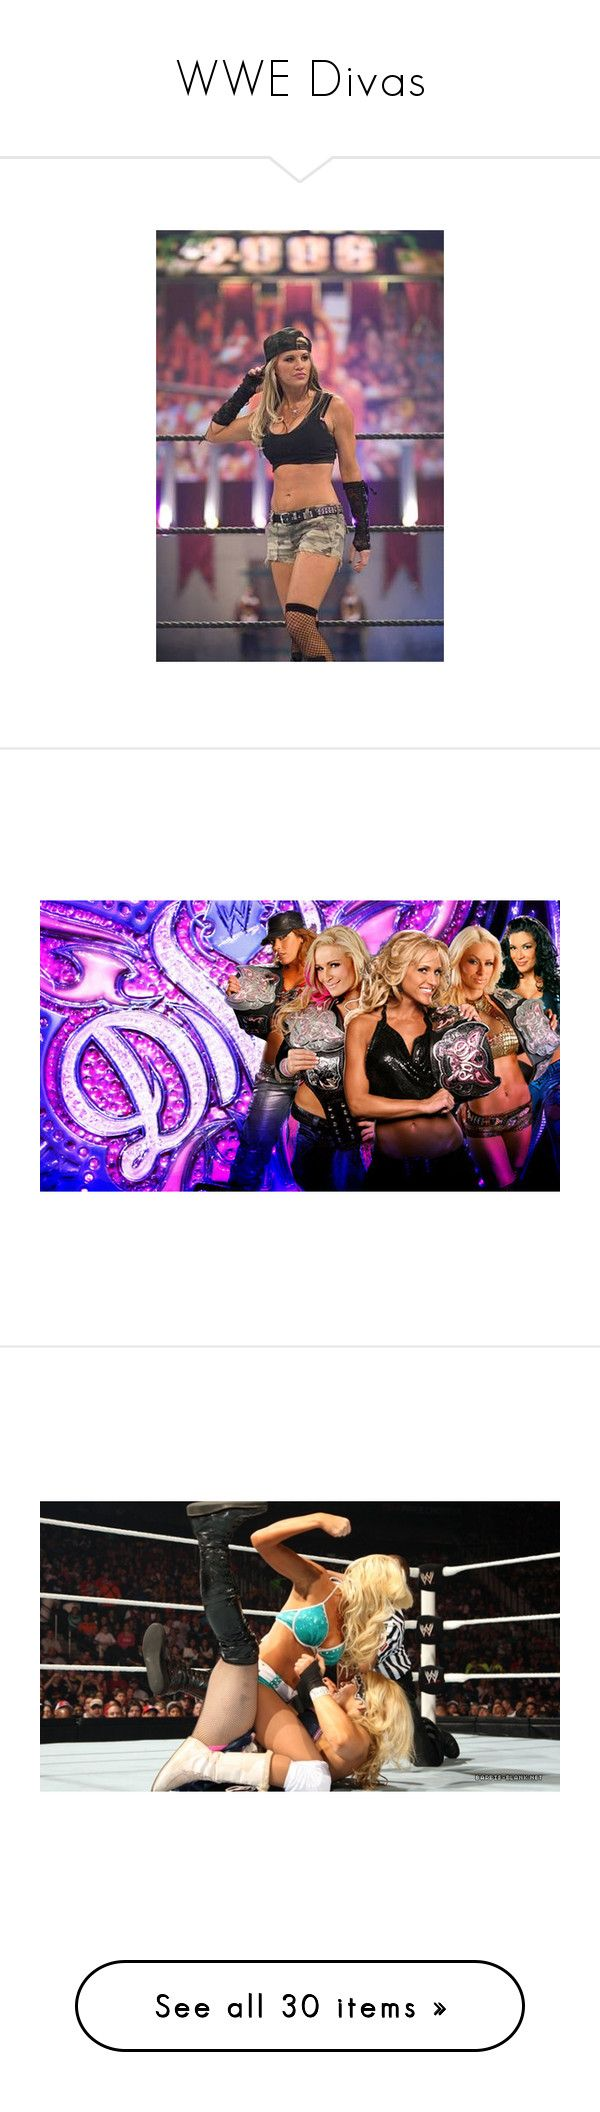 """WWE Divas"" by angelina-473 ❤ liked on Polyvore featuring wwe, backgrounds, catch, photos, pictures, home, home decor, ashley massaro, wwe divas and people"